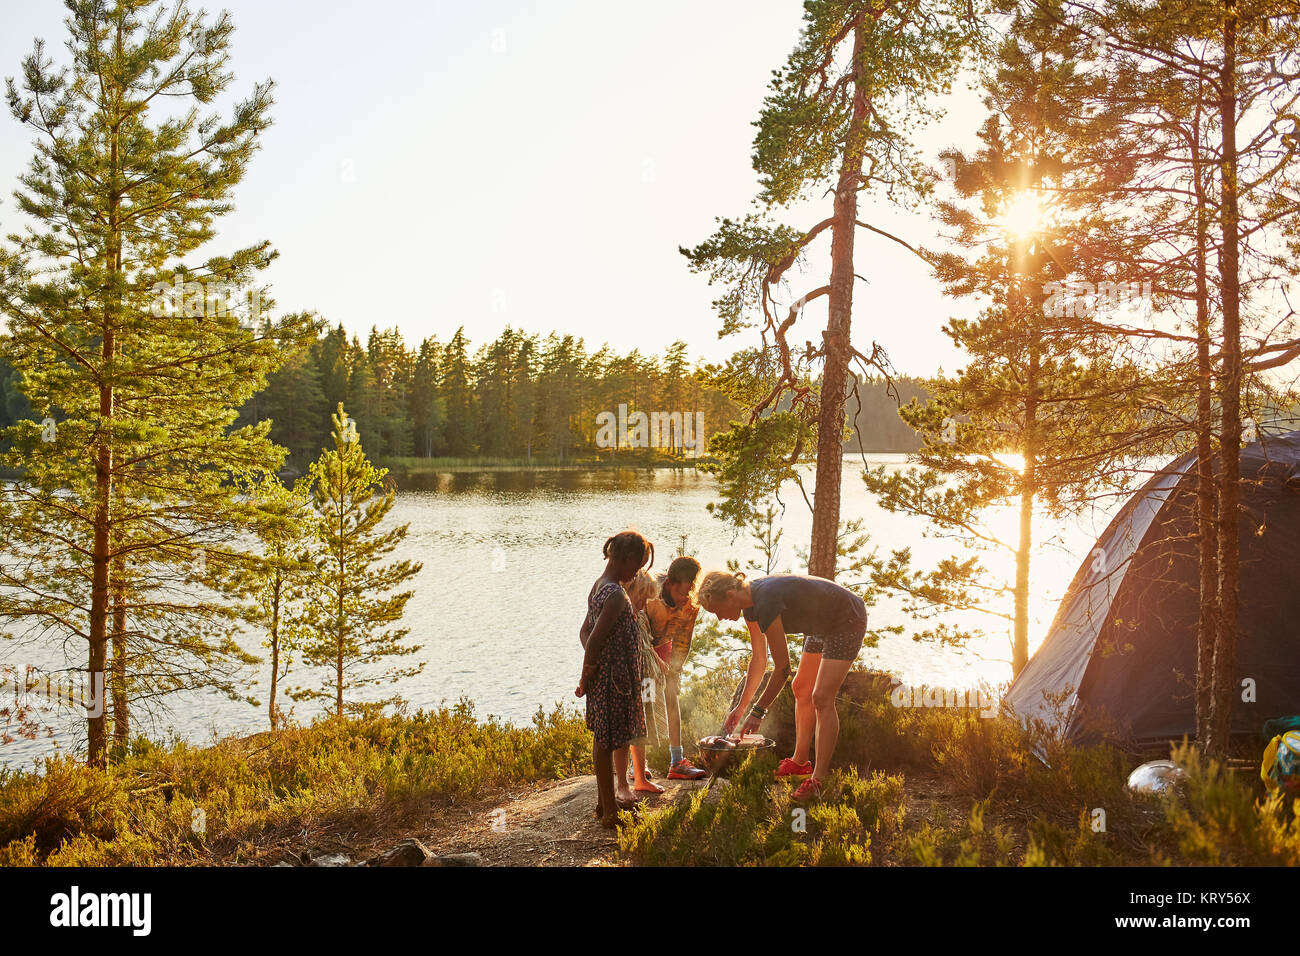 Family camping by a river - Stock Image